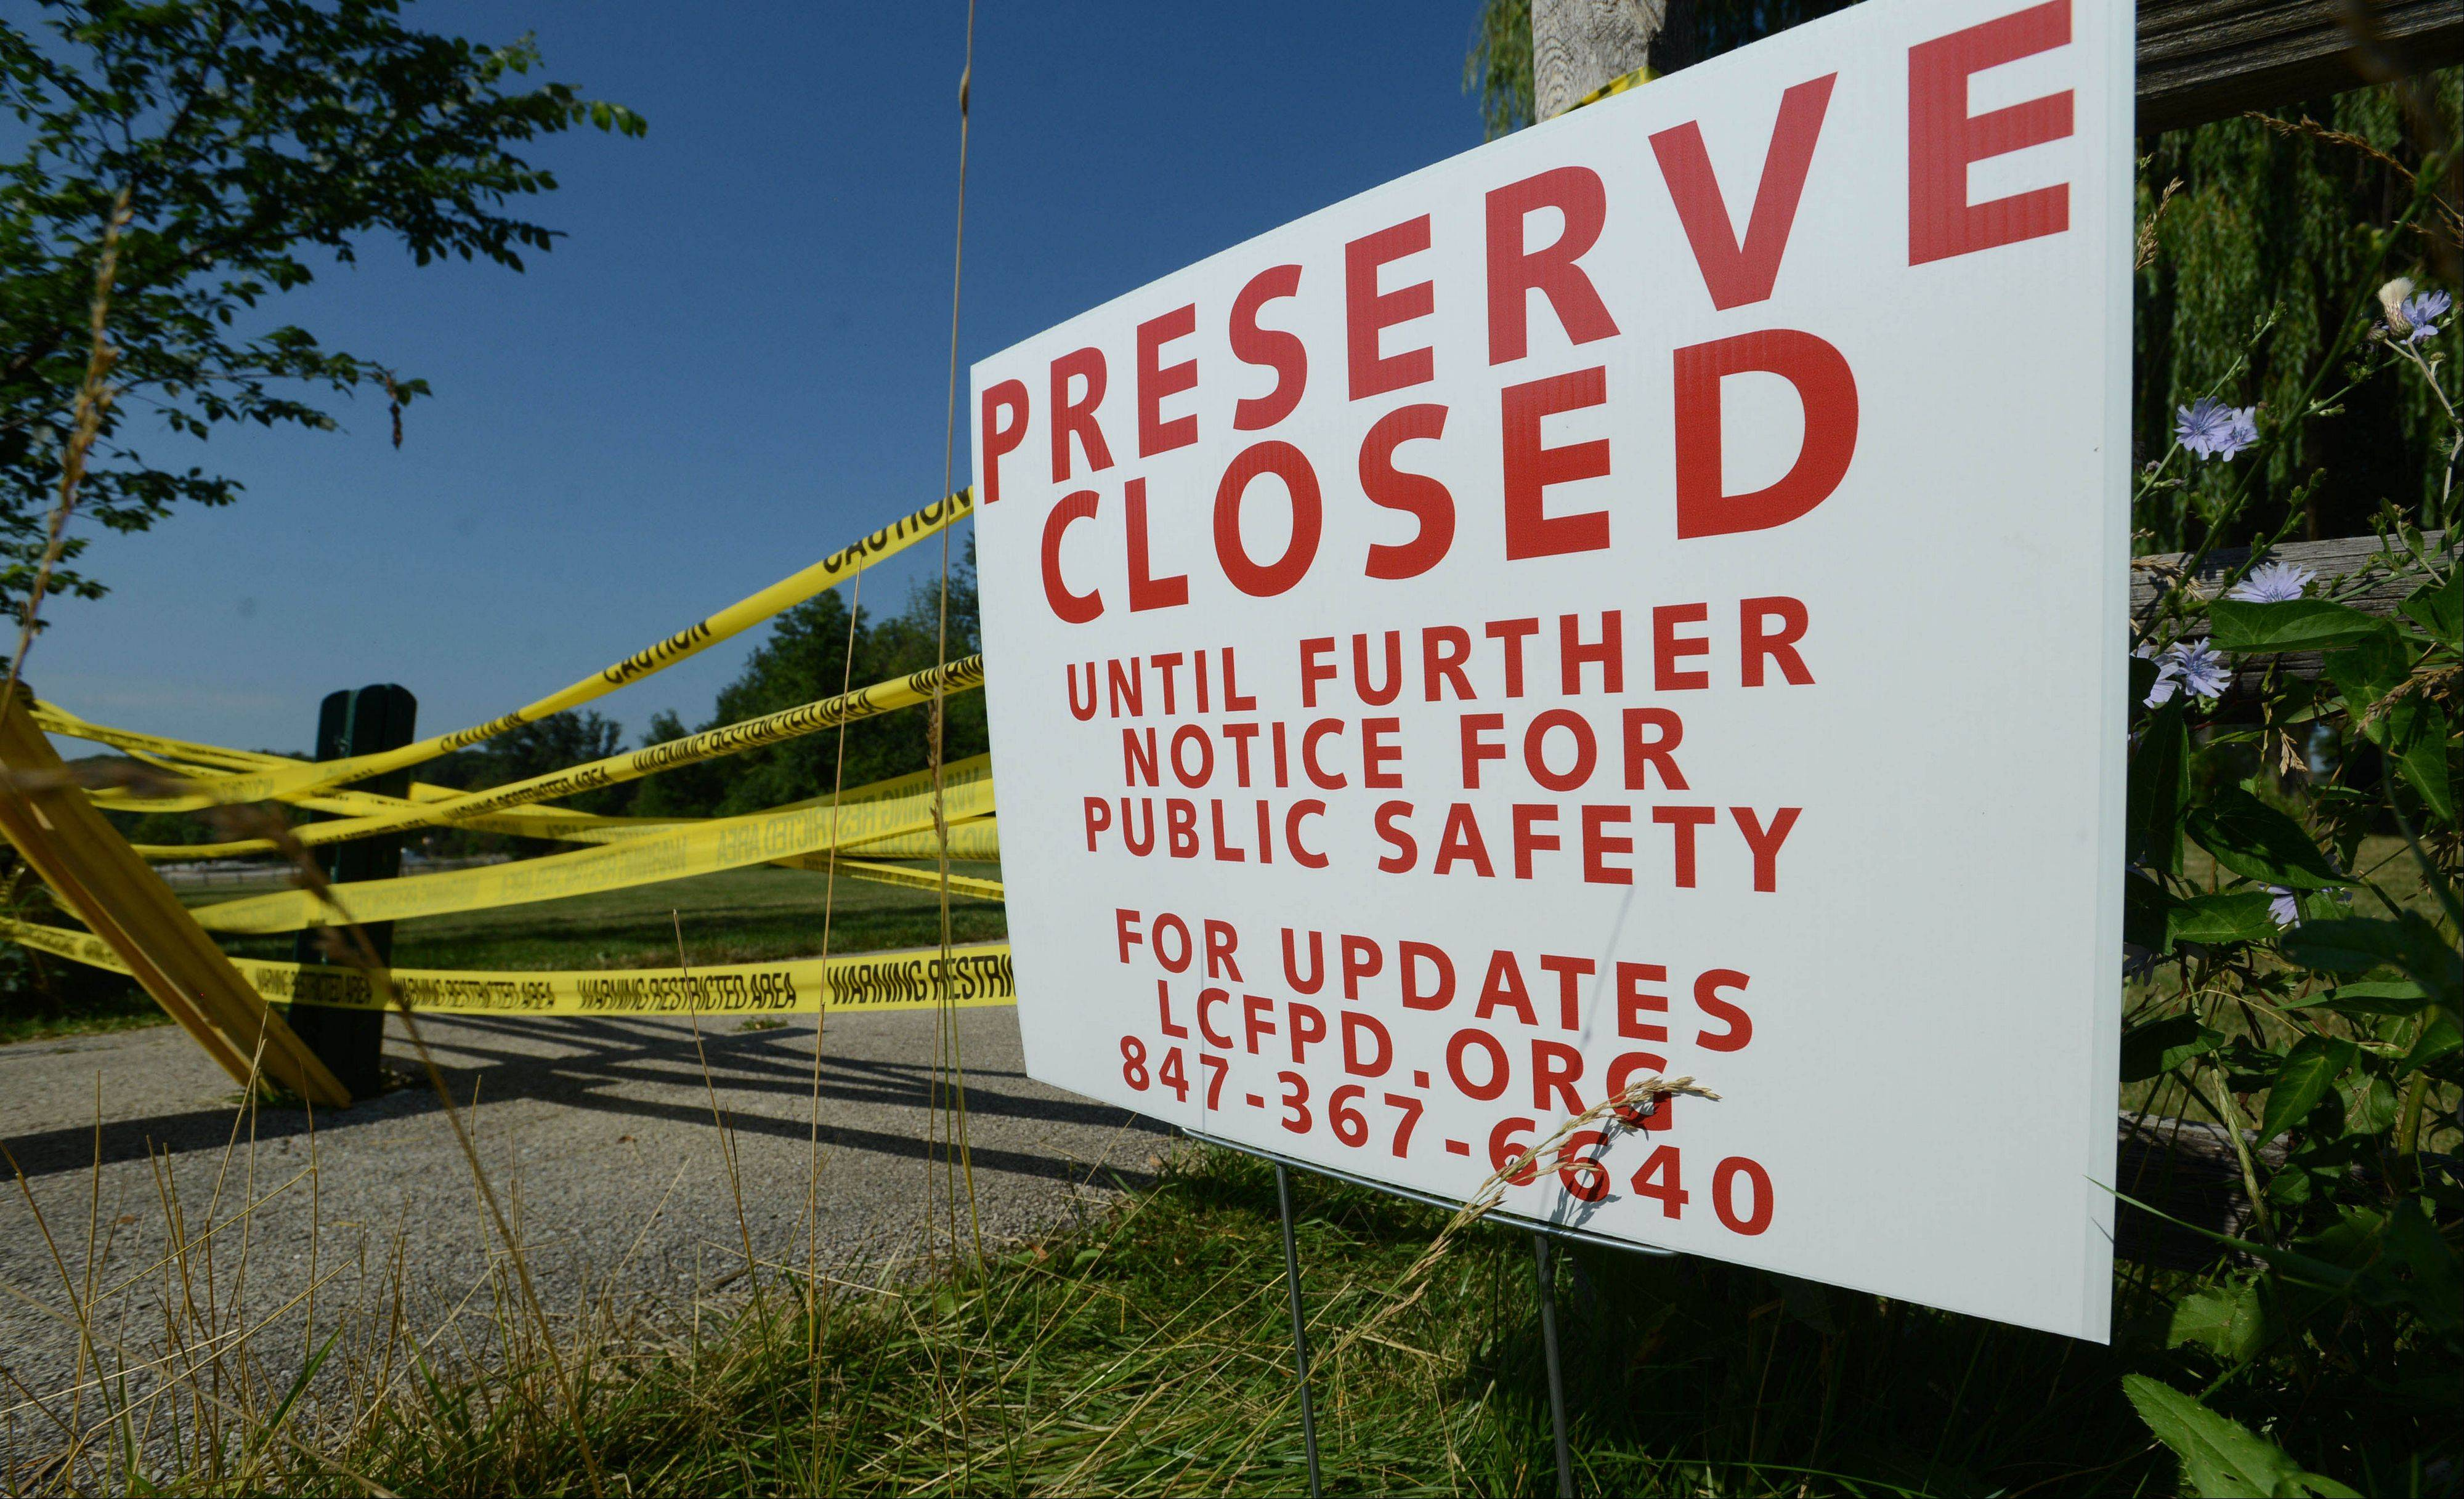 Independence Grove Forest Preserve near Libertyville remained closed yesterday due to a bomb scare Tuesday. Rangers said the park will not reopen until a complete investigation of the threat is completed.